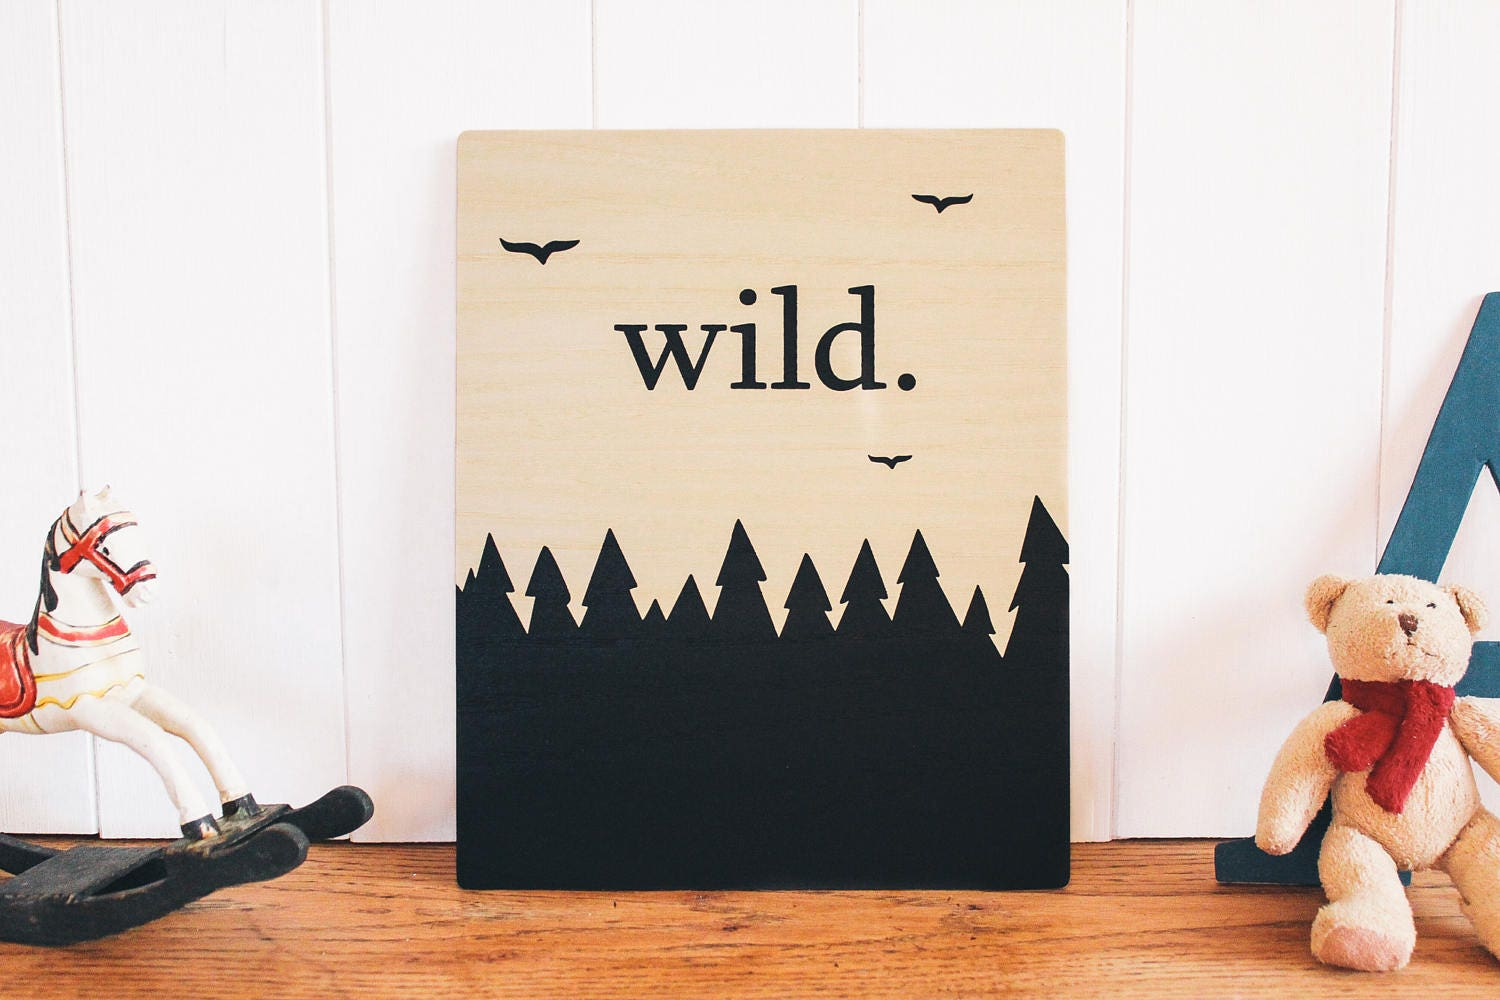 Wild Wooden Wall Art Wall Sign Nursery Decor Kids Room Home Decor